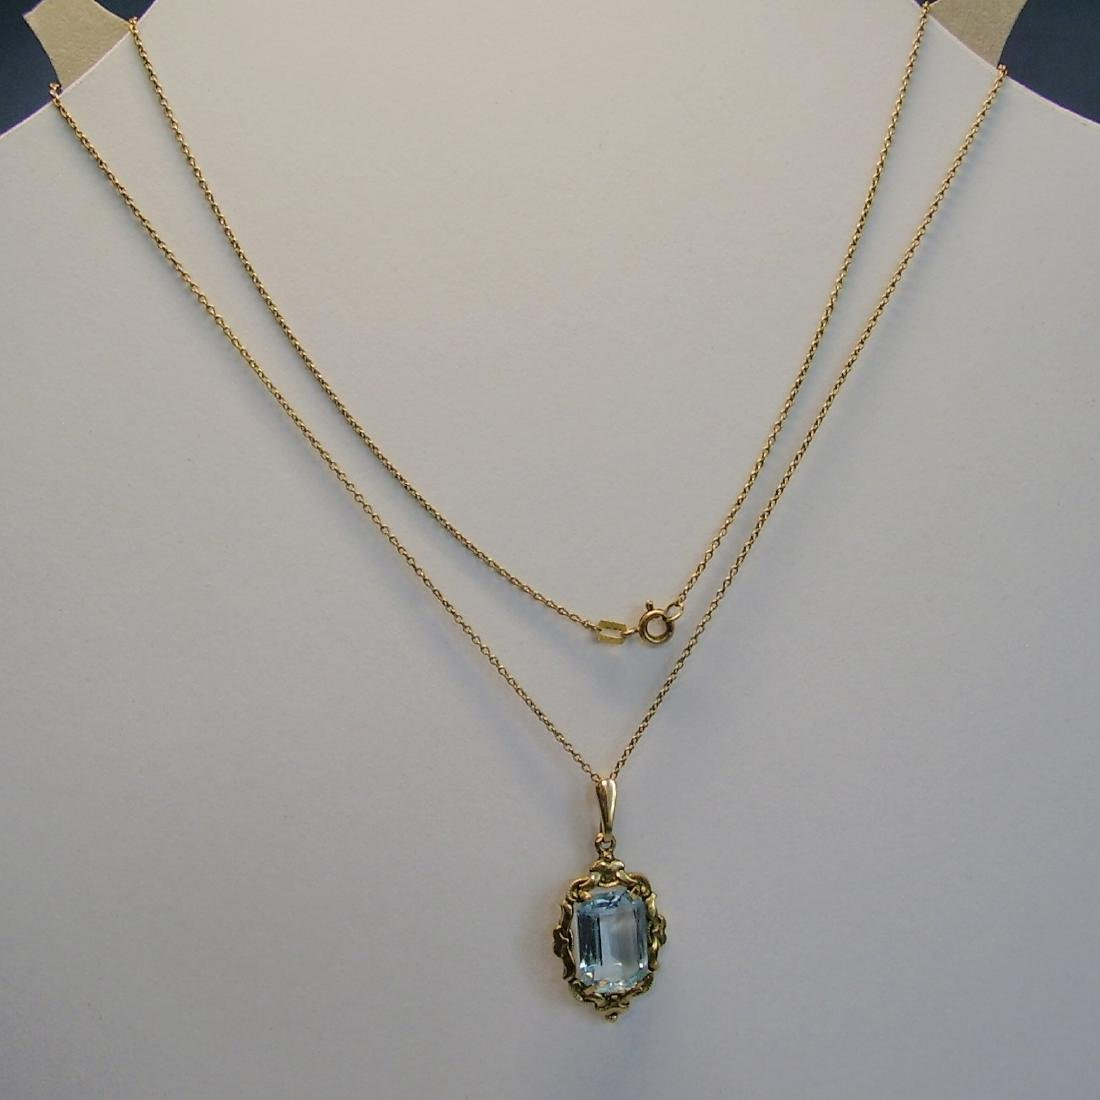 Art-Deco Pendant with chain